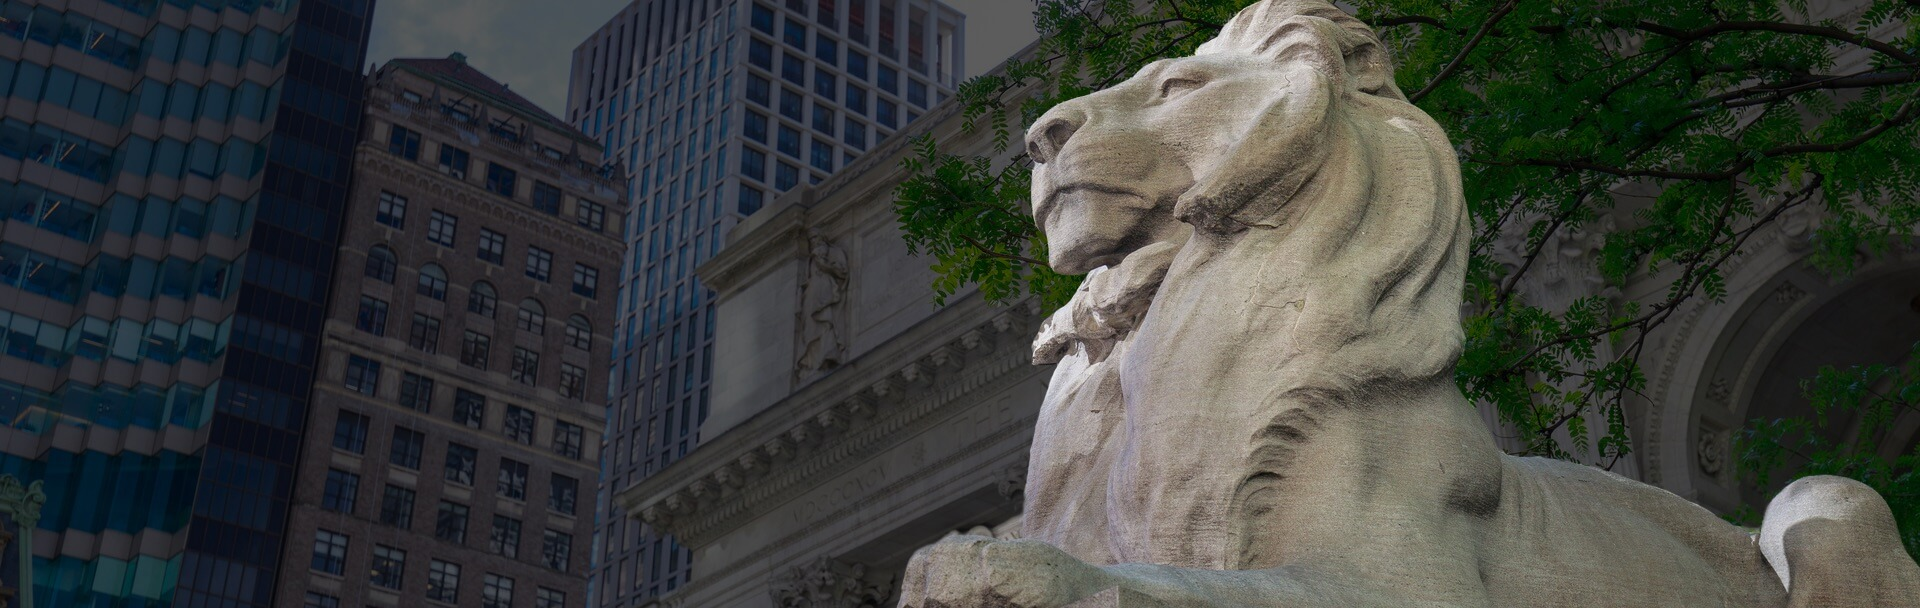 Lion statue outside NYC public library